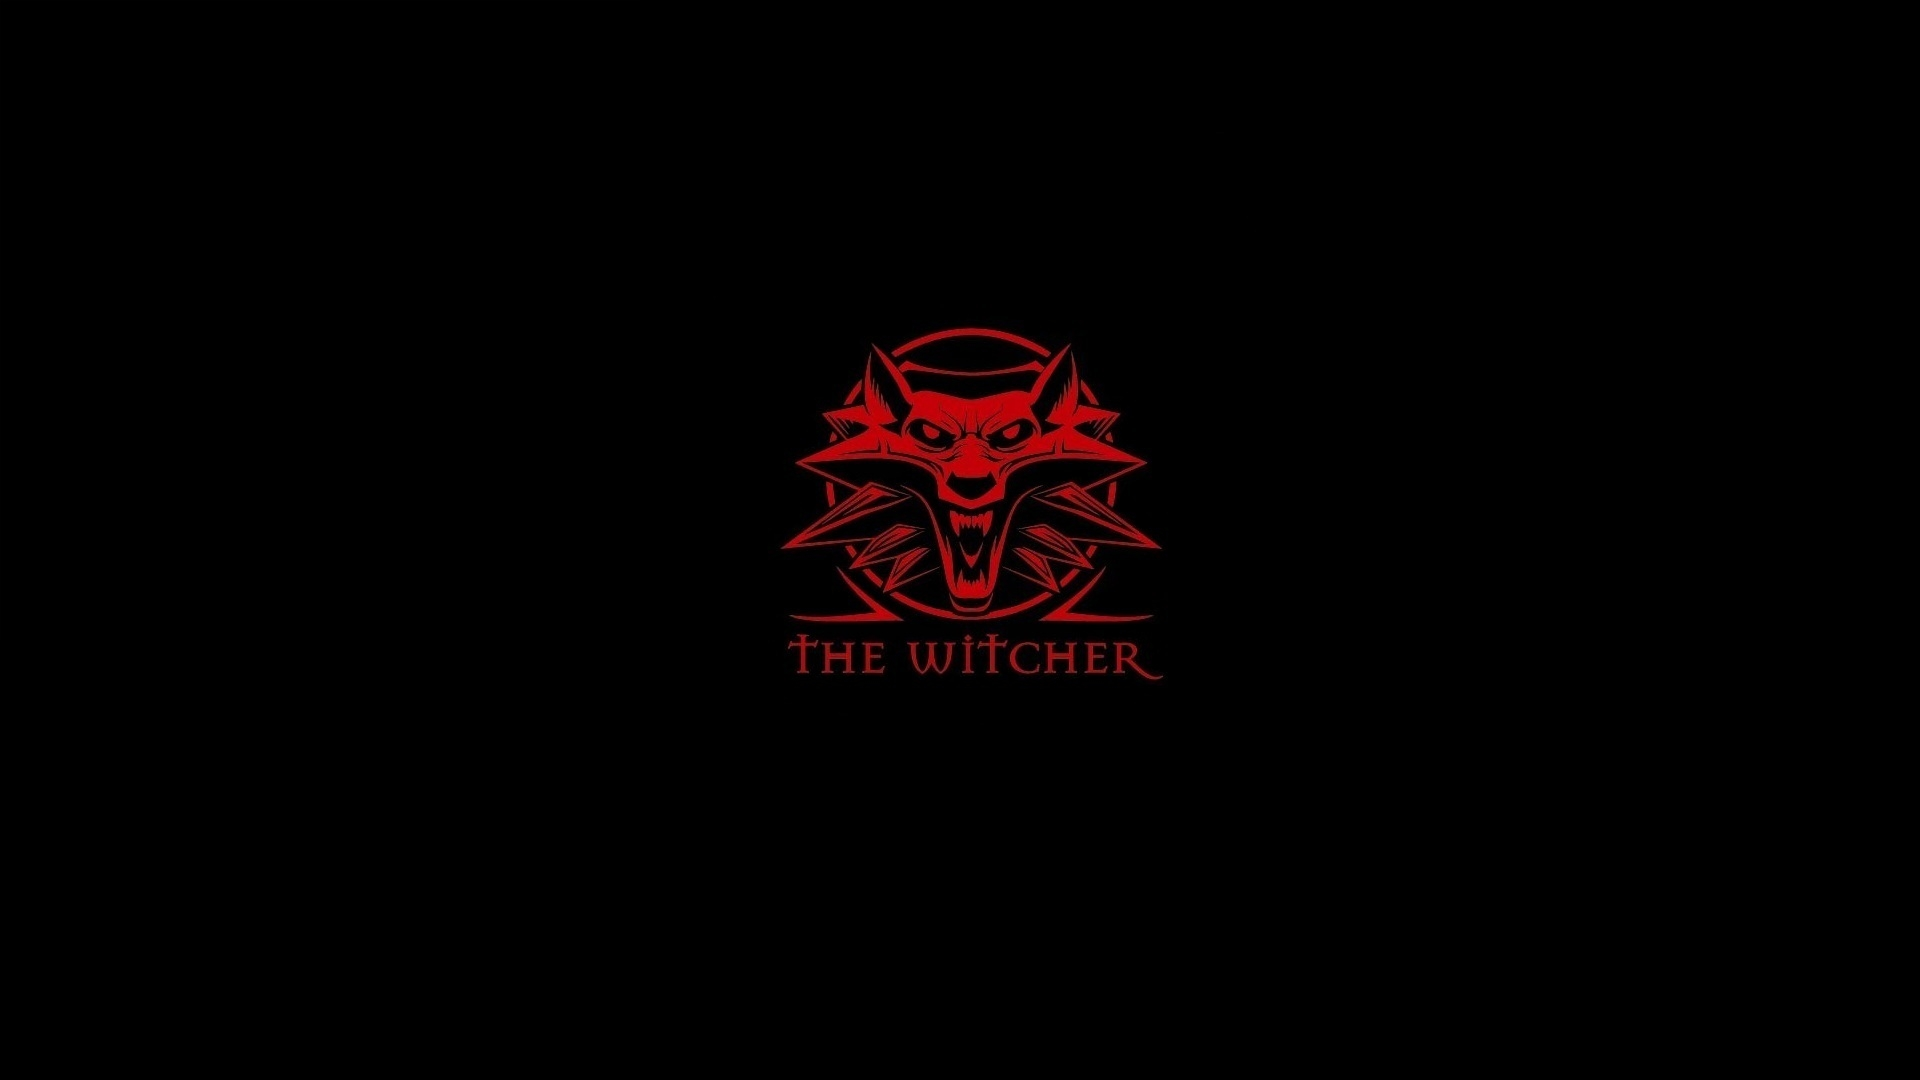 ... witcher, emblem, wolf from wallpapers4u.org , your wallpaper news